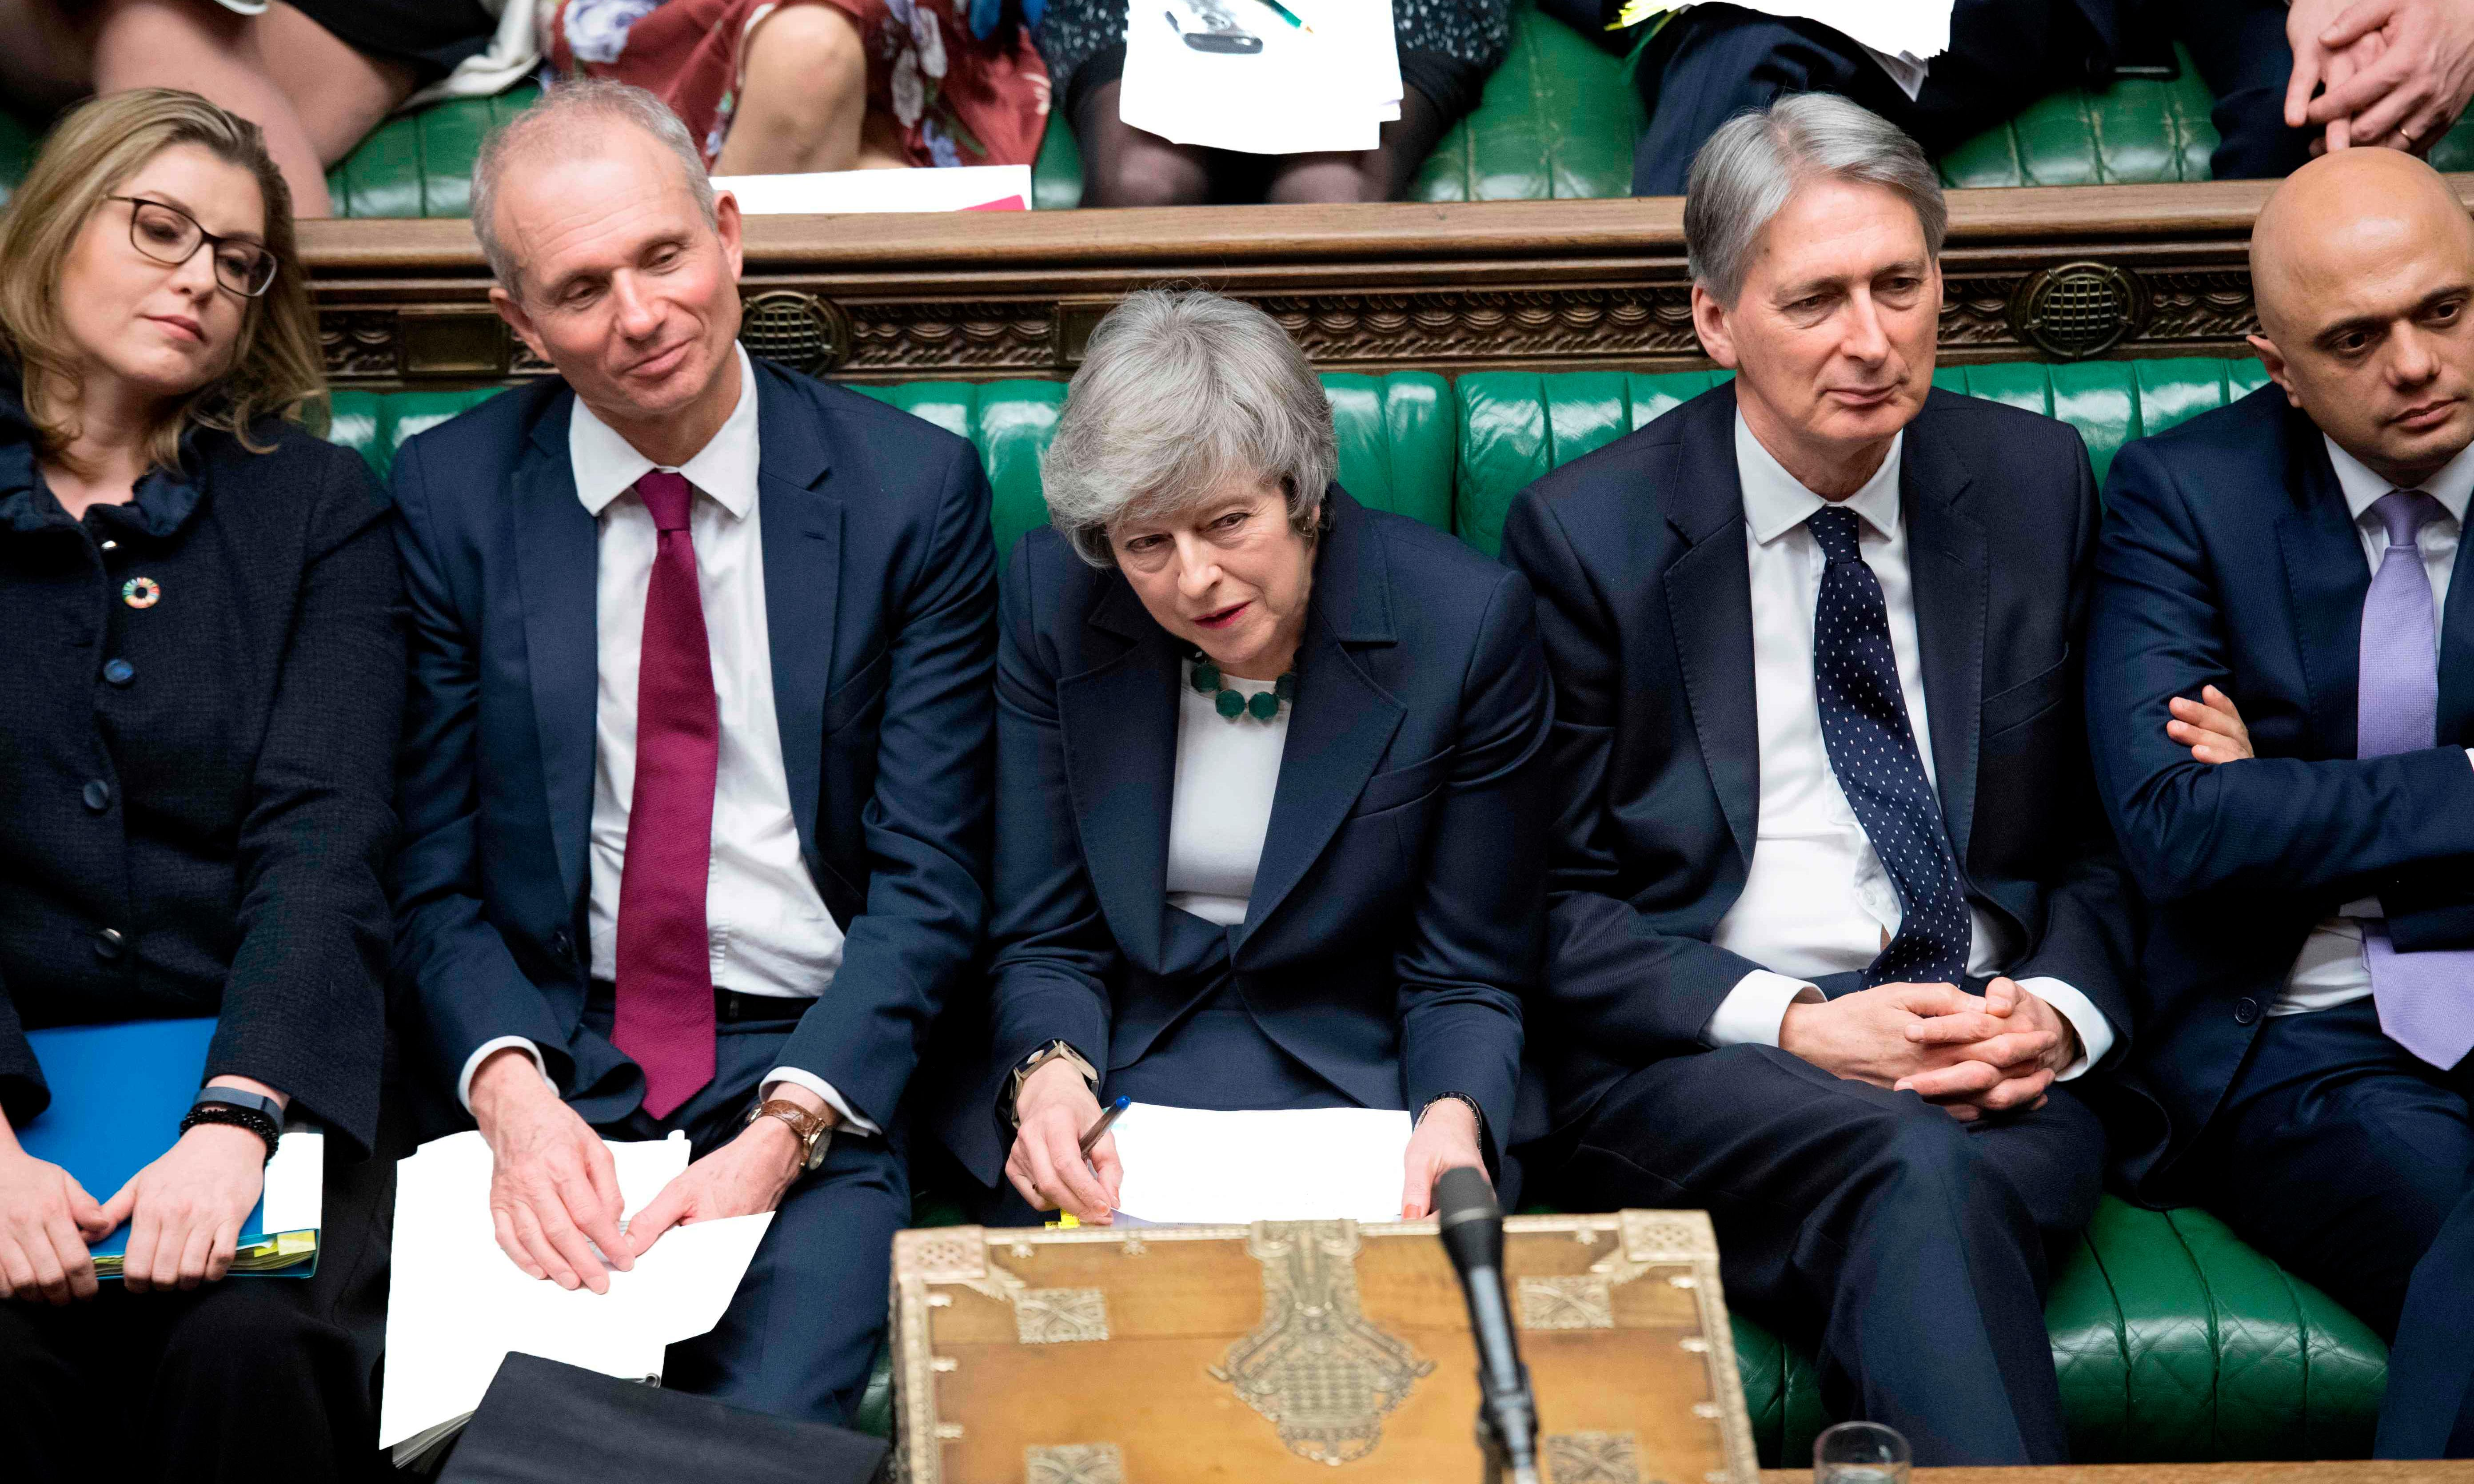 The resignation of three Tory MPs is a dire warning to the party